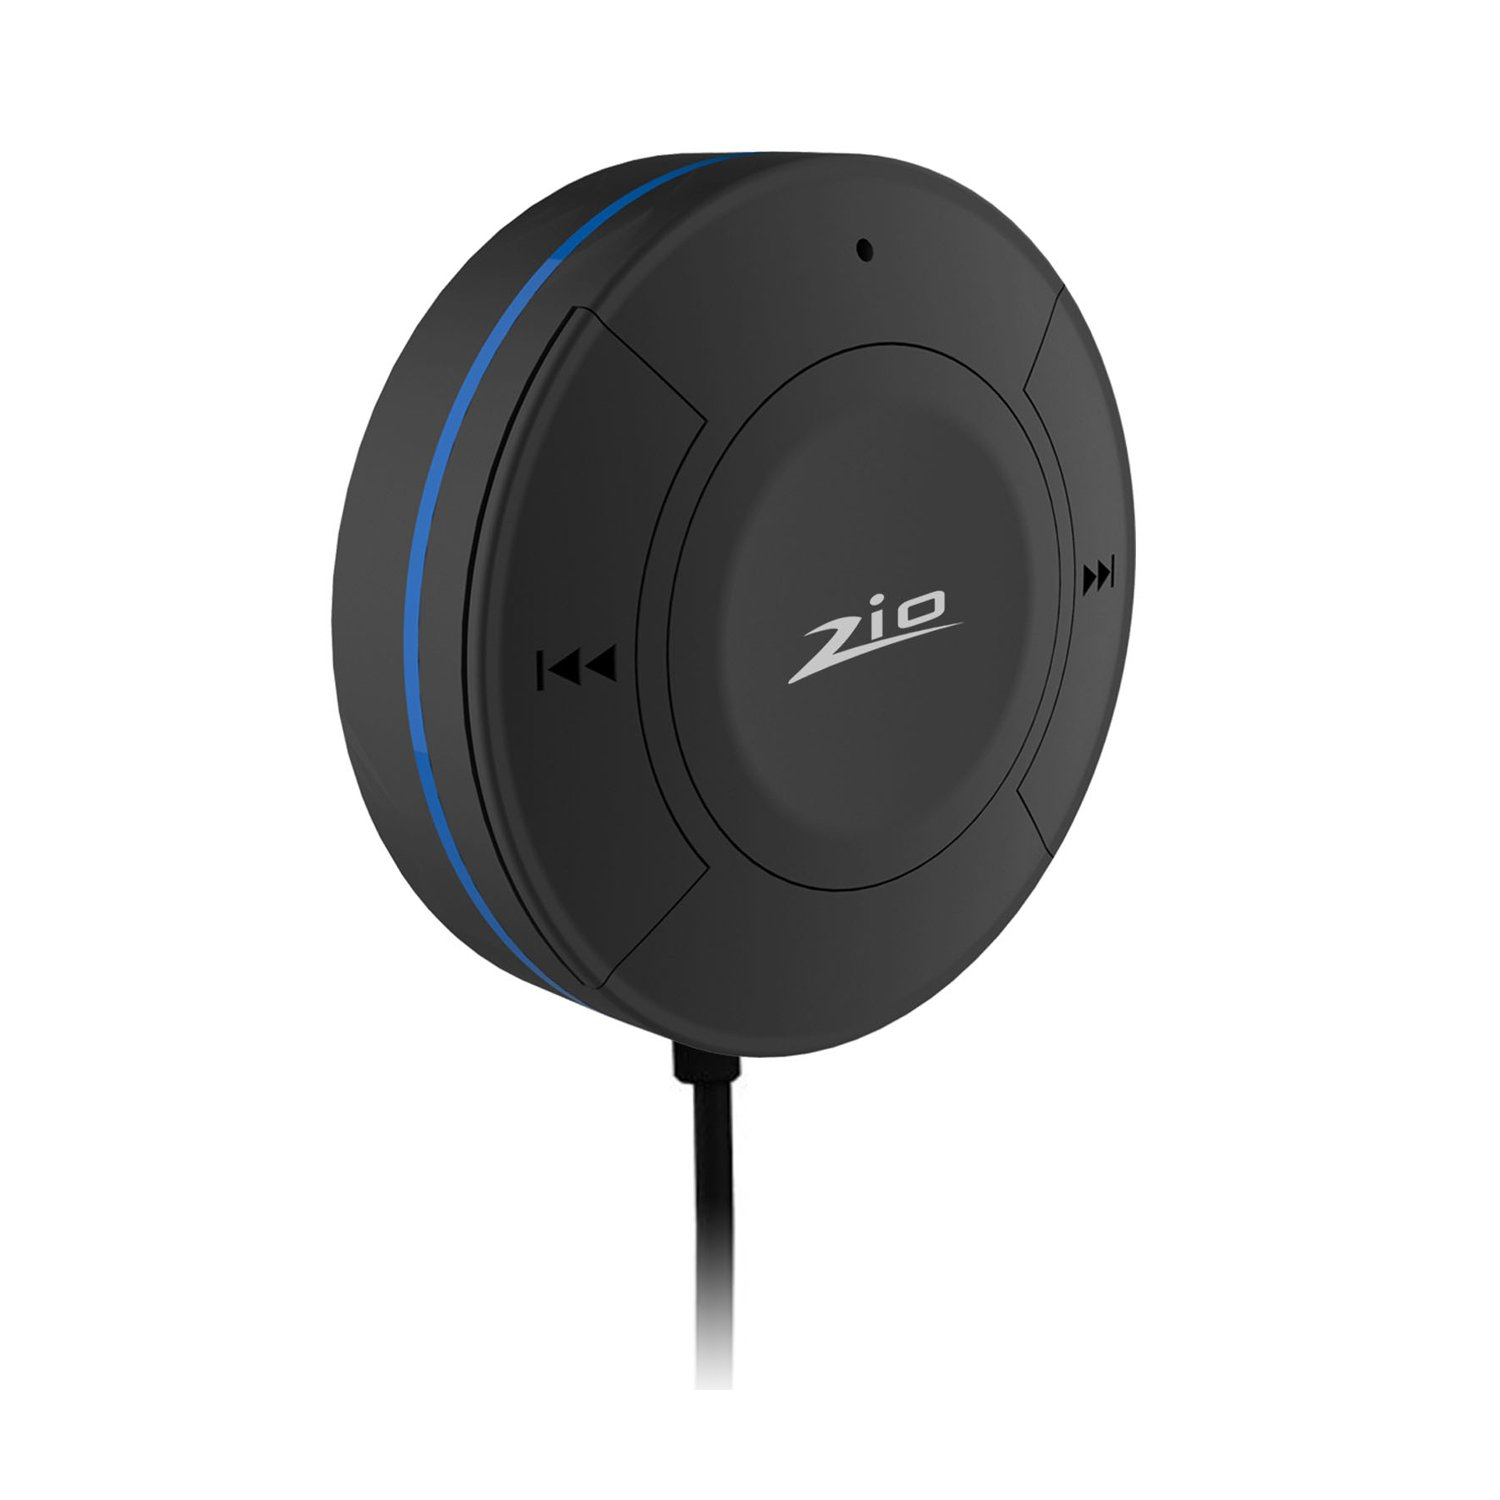 Zio Bluetooth 4.1 Hands-Free Car Kit Bluetooth Audio Music Receiver Adapter with Built-in Mic/3.5mm Aux Cable/ USB Charging Cable/3M Adhesive Base for Smartphones (Black)